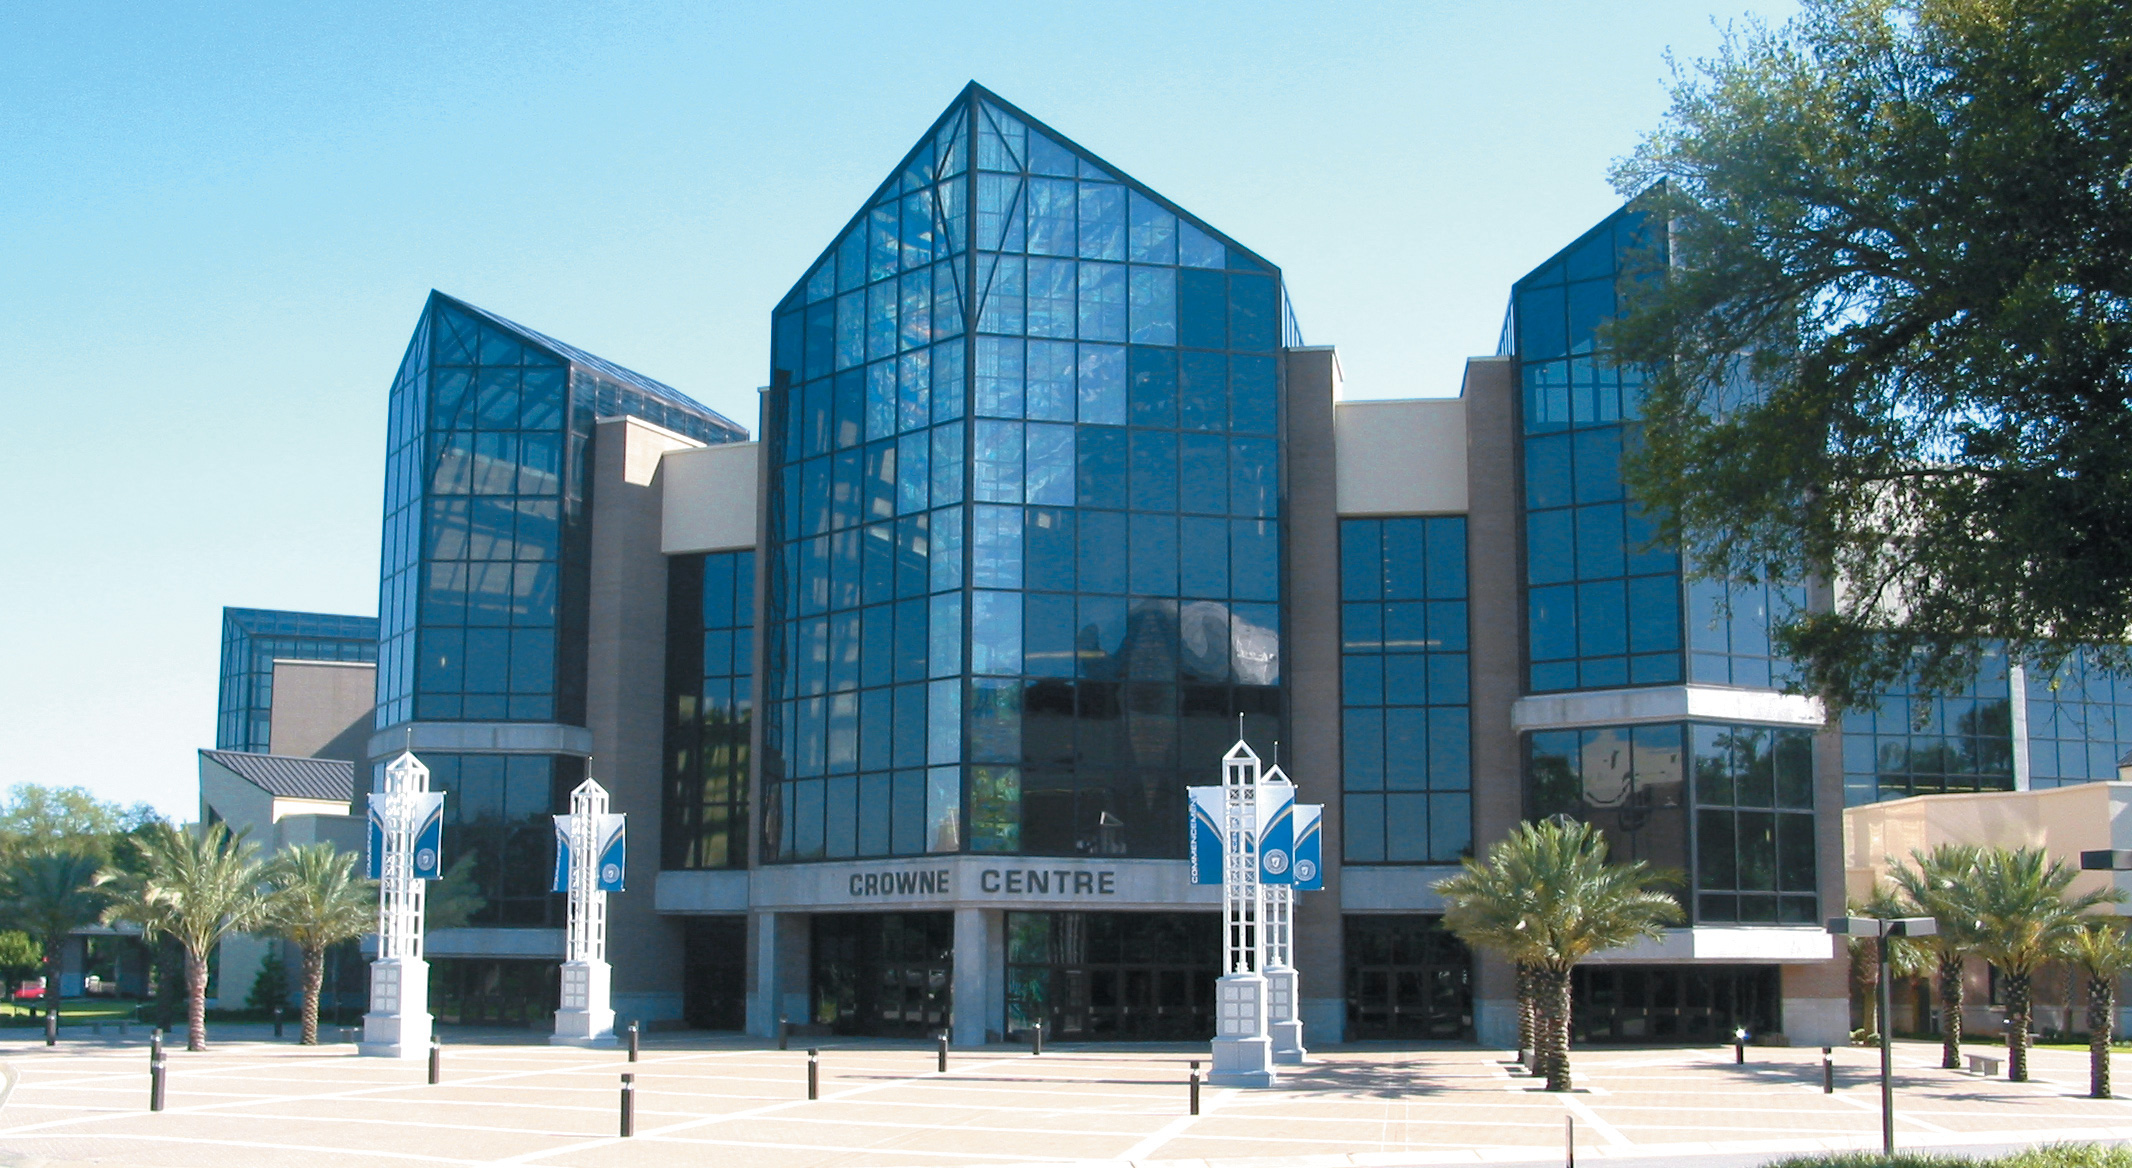 Robertson-Curtis-Commercial-Painting-and-Decorating_PCC-Crowne-Centre-Pensacola-Florida-Main-View-Day